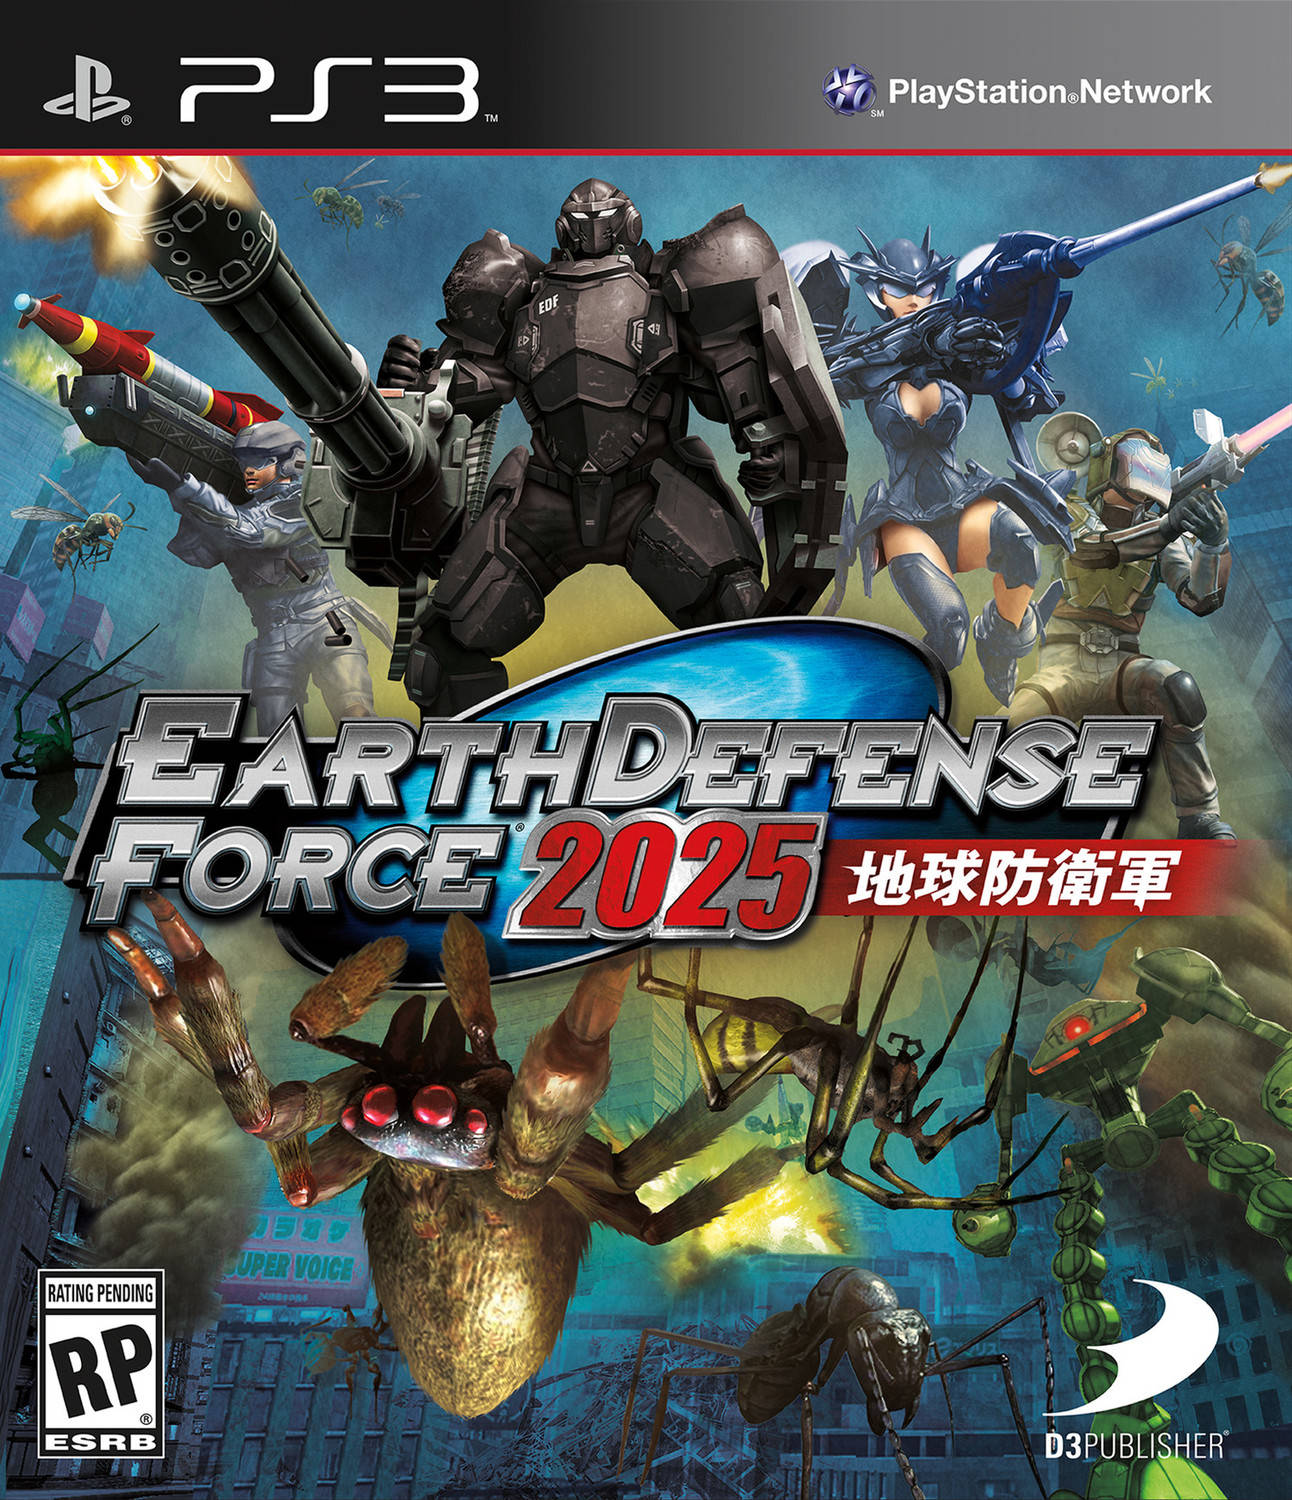 Earth Defense Force 2025 - PlayStation 3: PS3 game